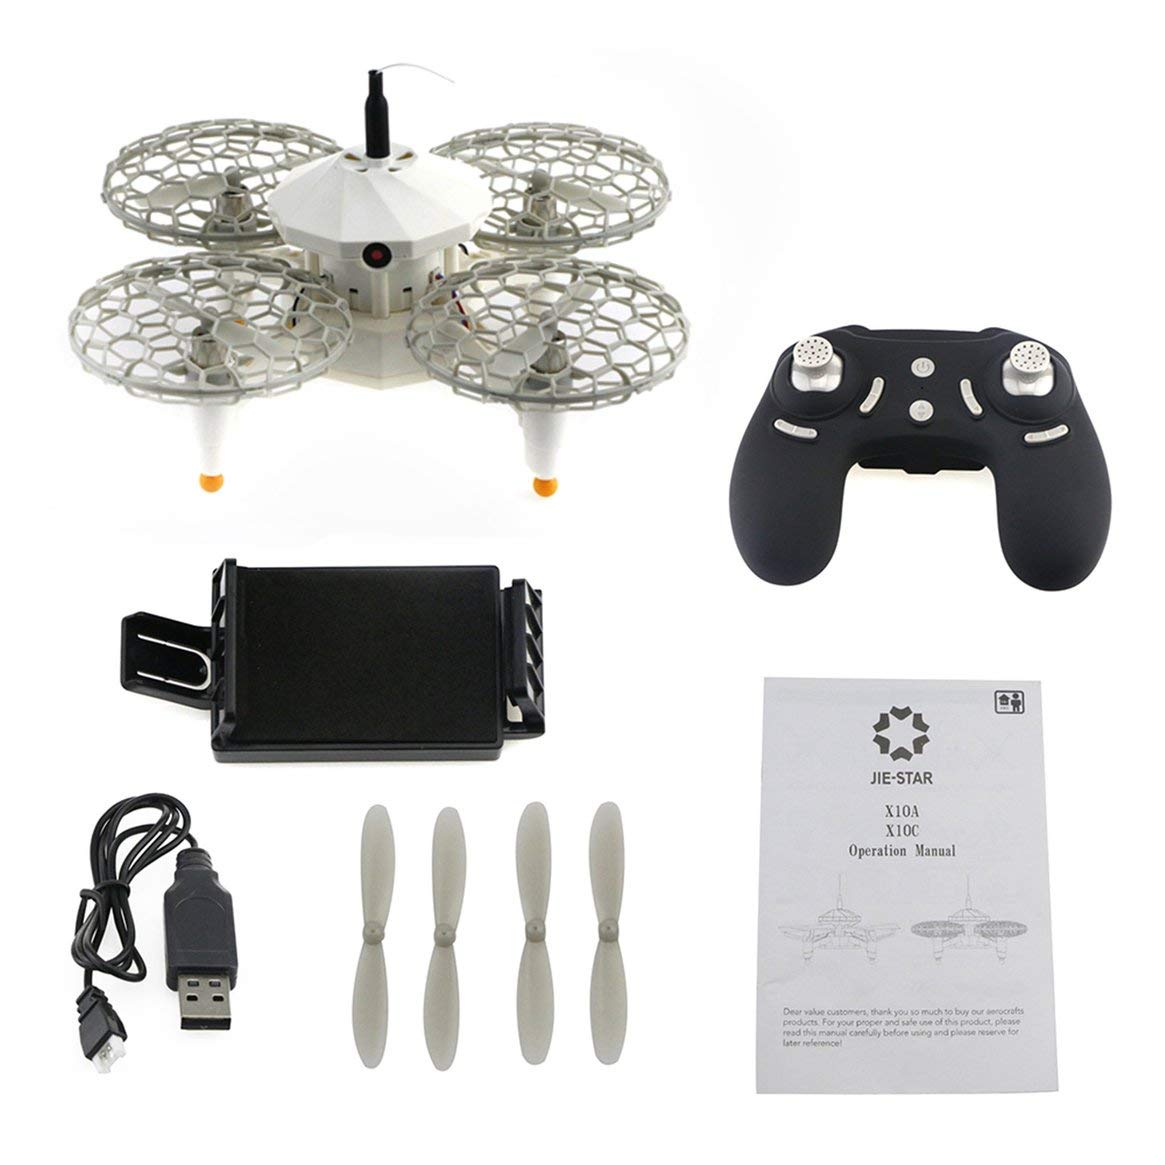 Delicacydex JJRC X10C Folding 30W Kamera-Fernbedienung Quadcopter WiFi FPV Headless Altitude Hold EIN-Schlüssel-Start / Lande-Drohne - Grau